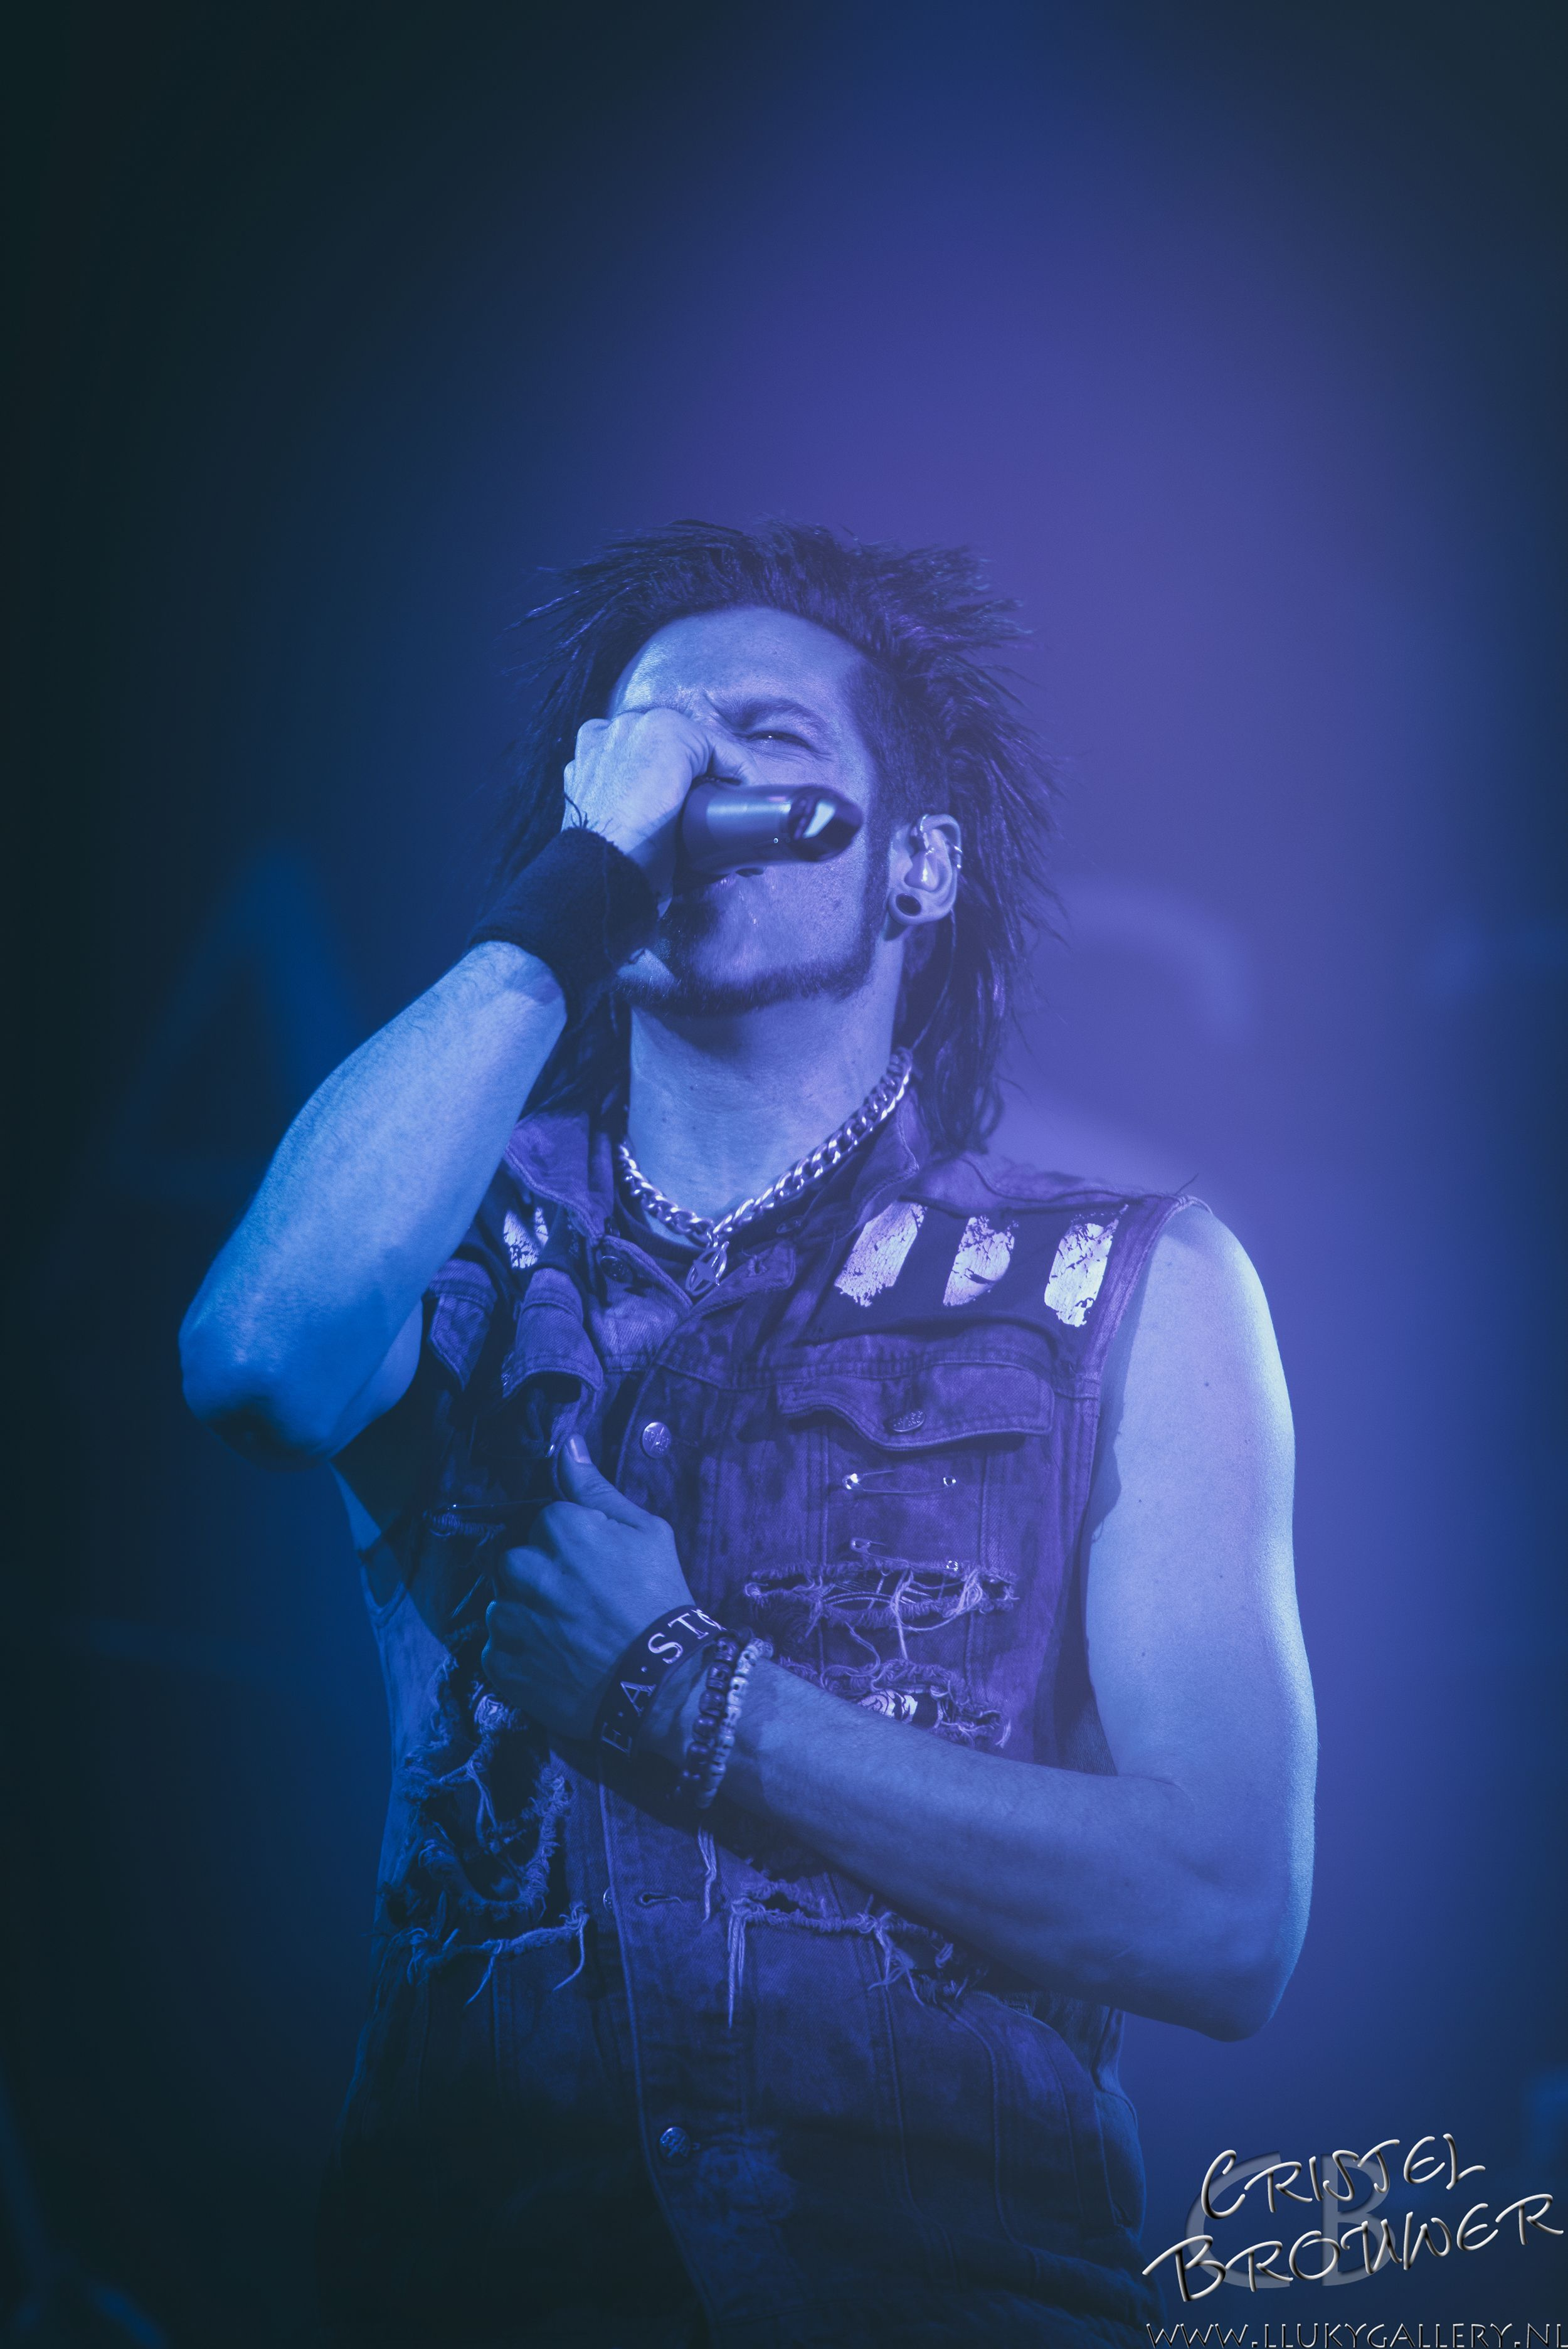 Likeastorm Cooking Up A Storm In Amsterdam Awesome Show Pics Up At Www Llukygallery Nl Enjoy Mattbrooks Chri Like A Storm Chris Brooks Jager Meister